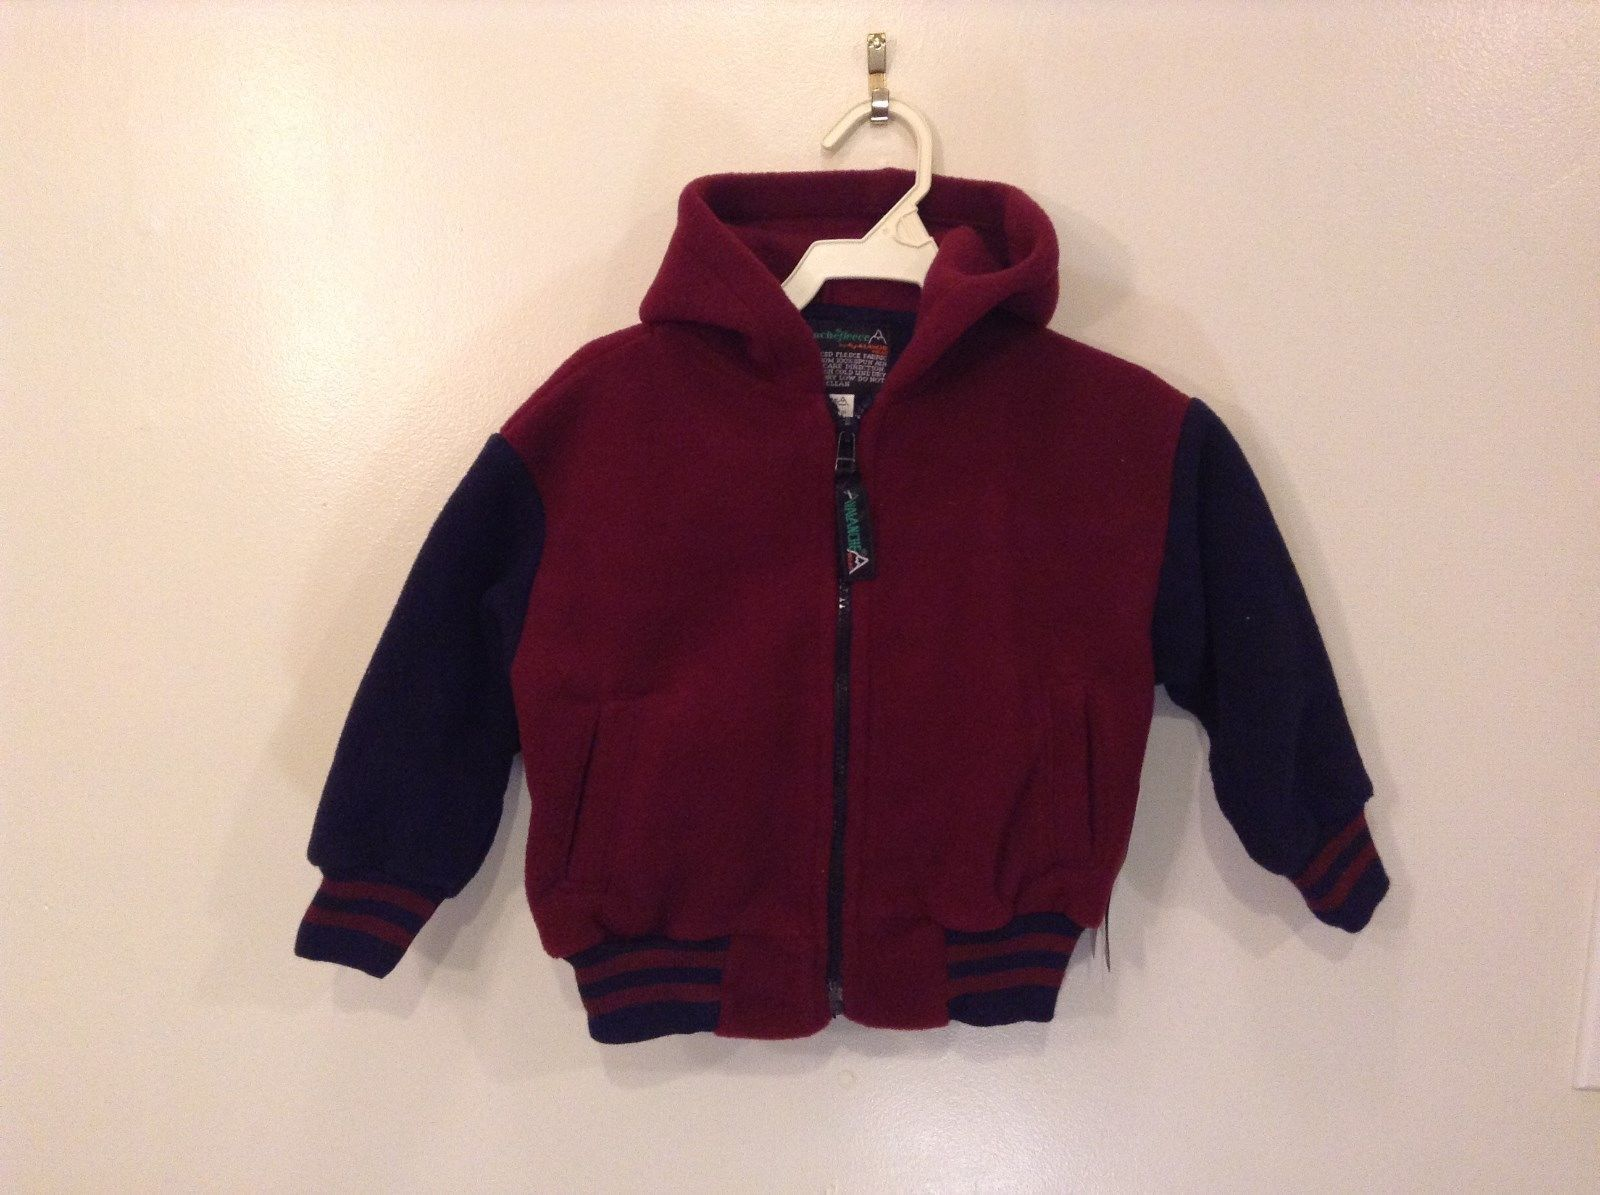 Avalanche Wear Fleece Hooded Jacket Navy Blue Maroon Front Zipper Size 2T Small